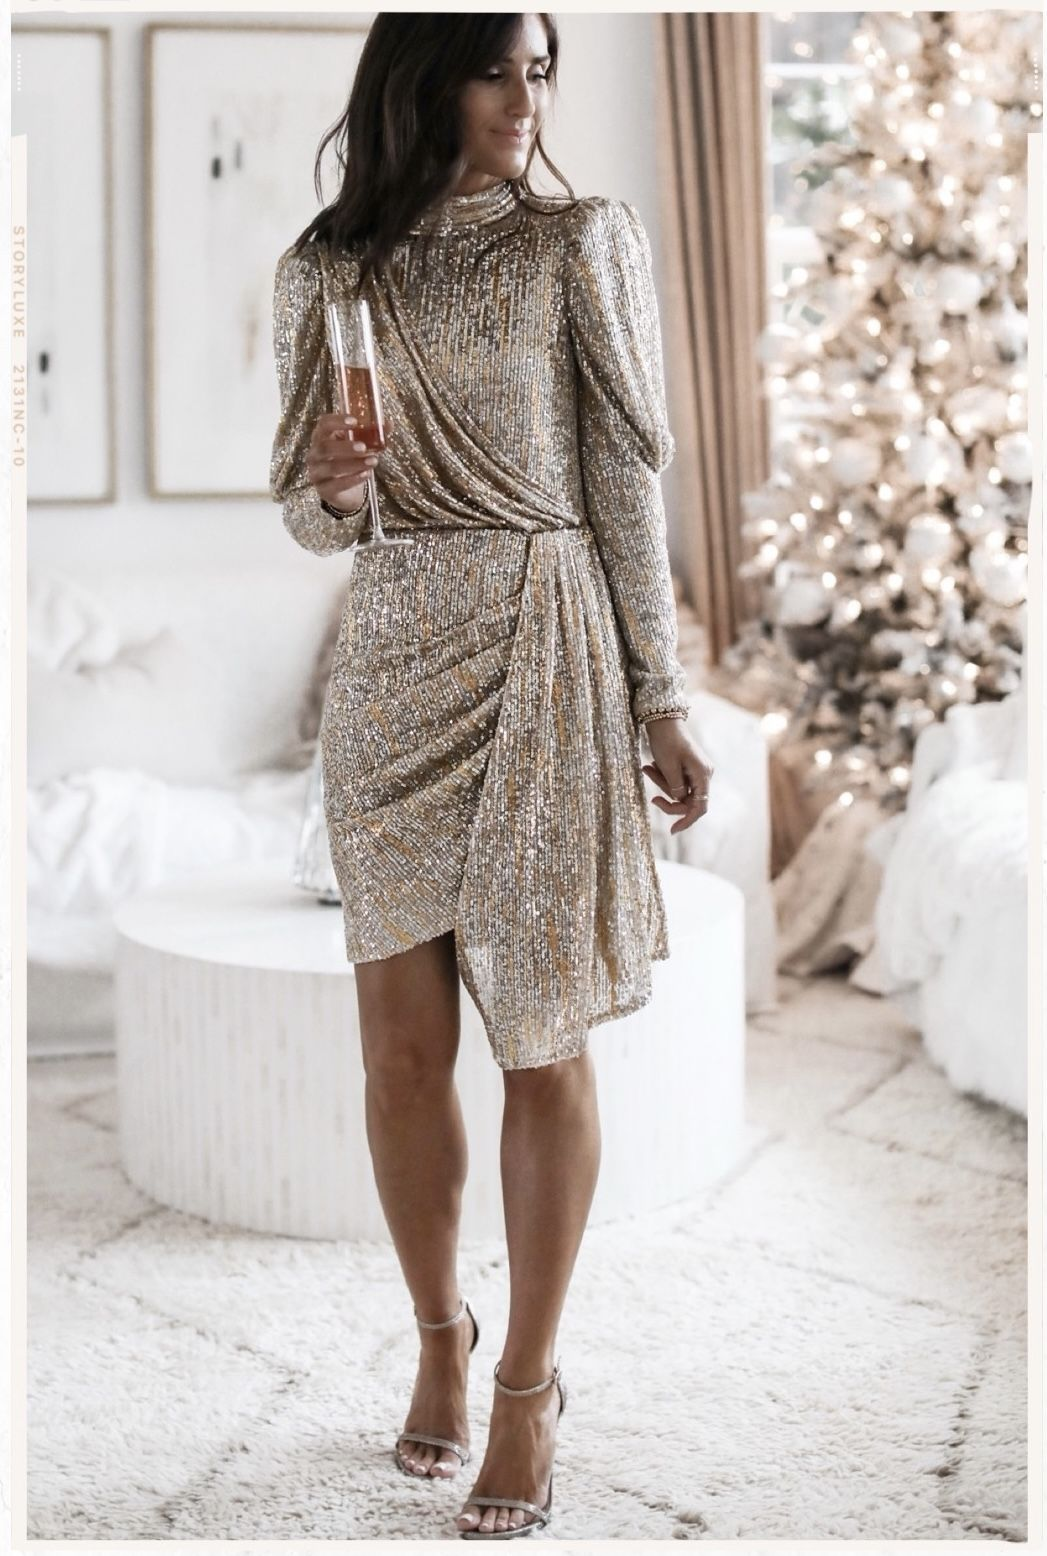 Weekend Sales Items I M Loving Vol 70 Stylin By Aylin Christmas Party Dress Holiday Party Dresses New Years Eve Dresses [ 1556 x 1047 Pixel ]